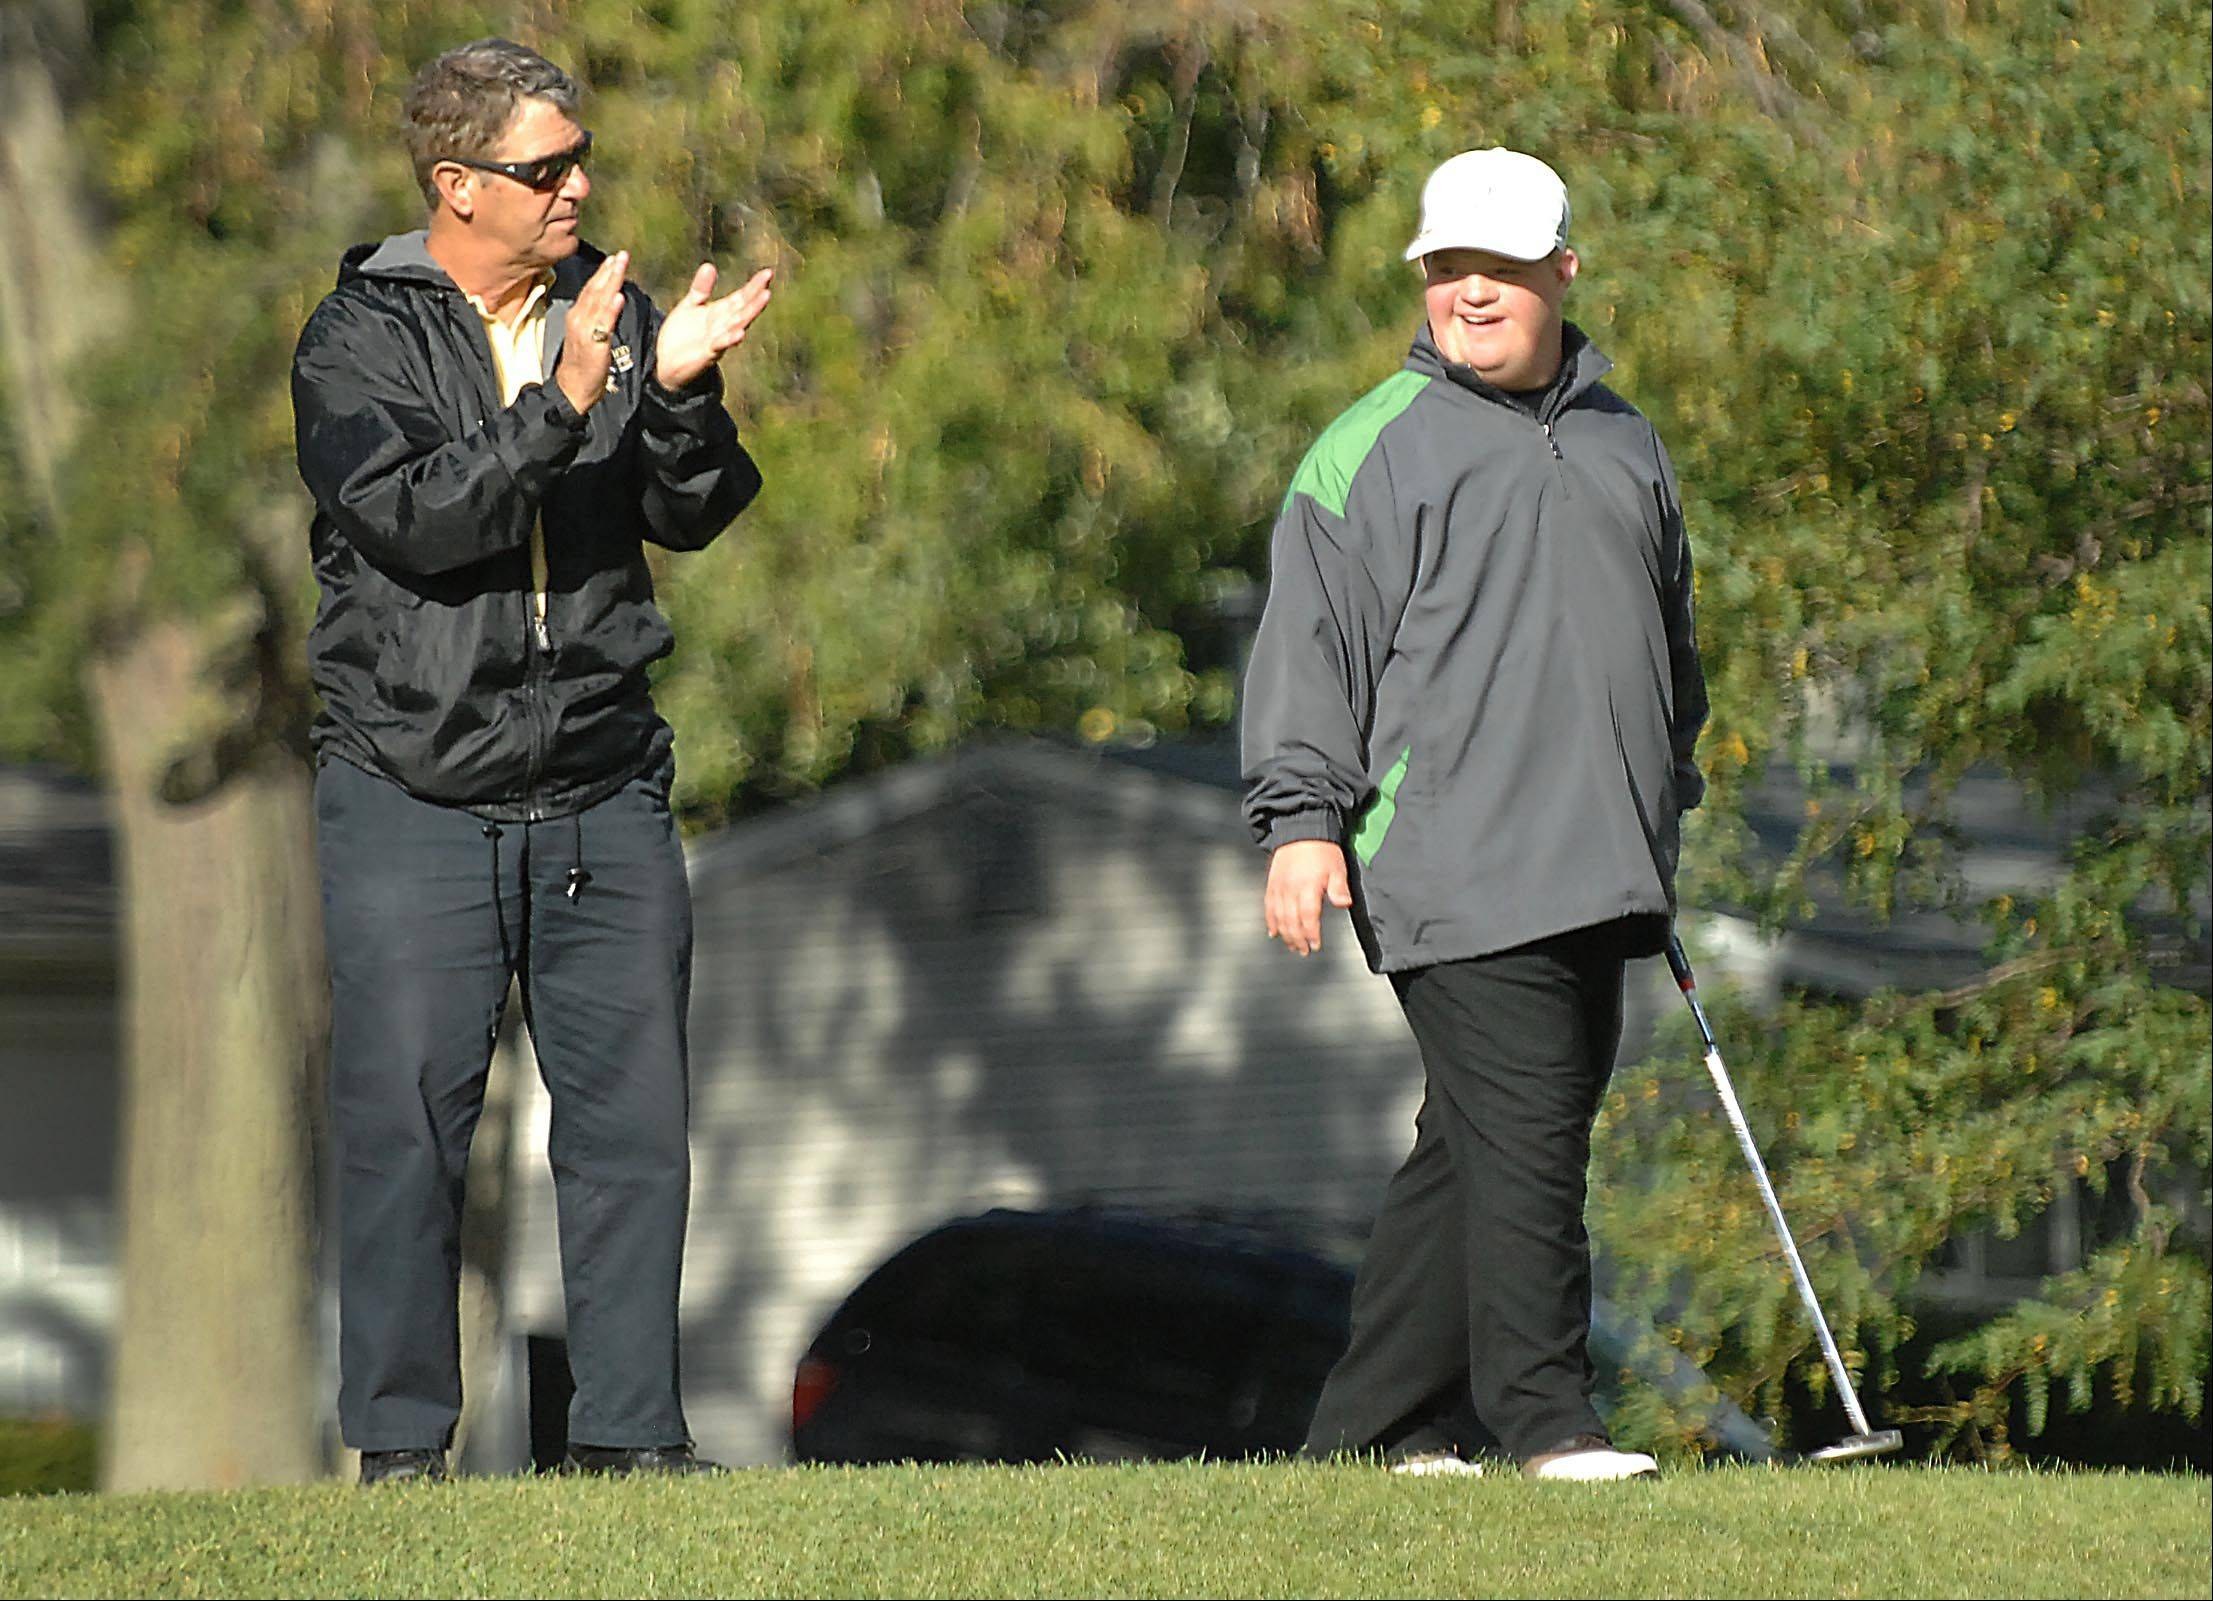 Coach George Rosner applauds and encourages Danny Orlando, who has Down syndrome, as he walks to the green to putt at Streamwood Oaks Golf Club. Danny plays for the Streamwood High School boys team.